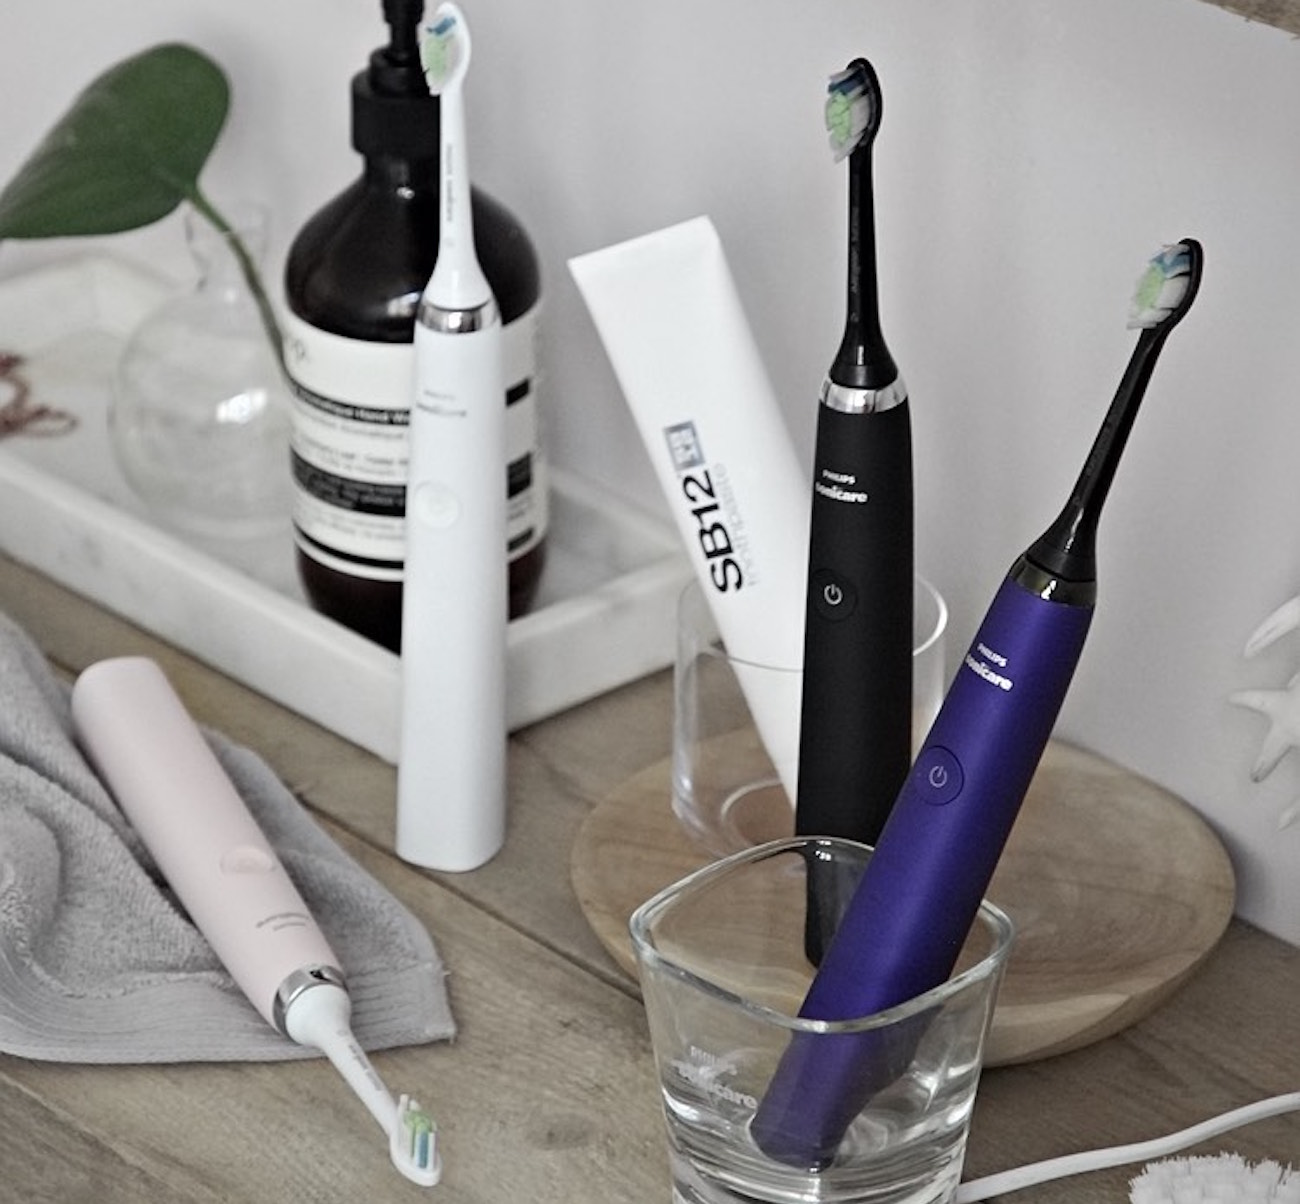 sonicare-diamondclean-electric-toothbrush-by-philips-04